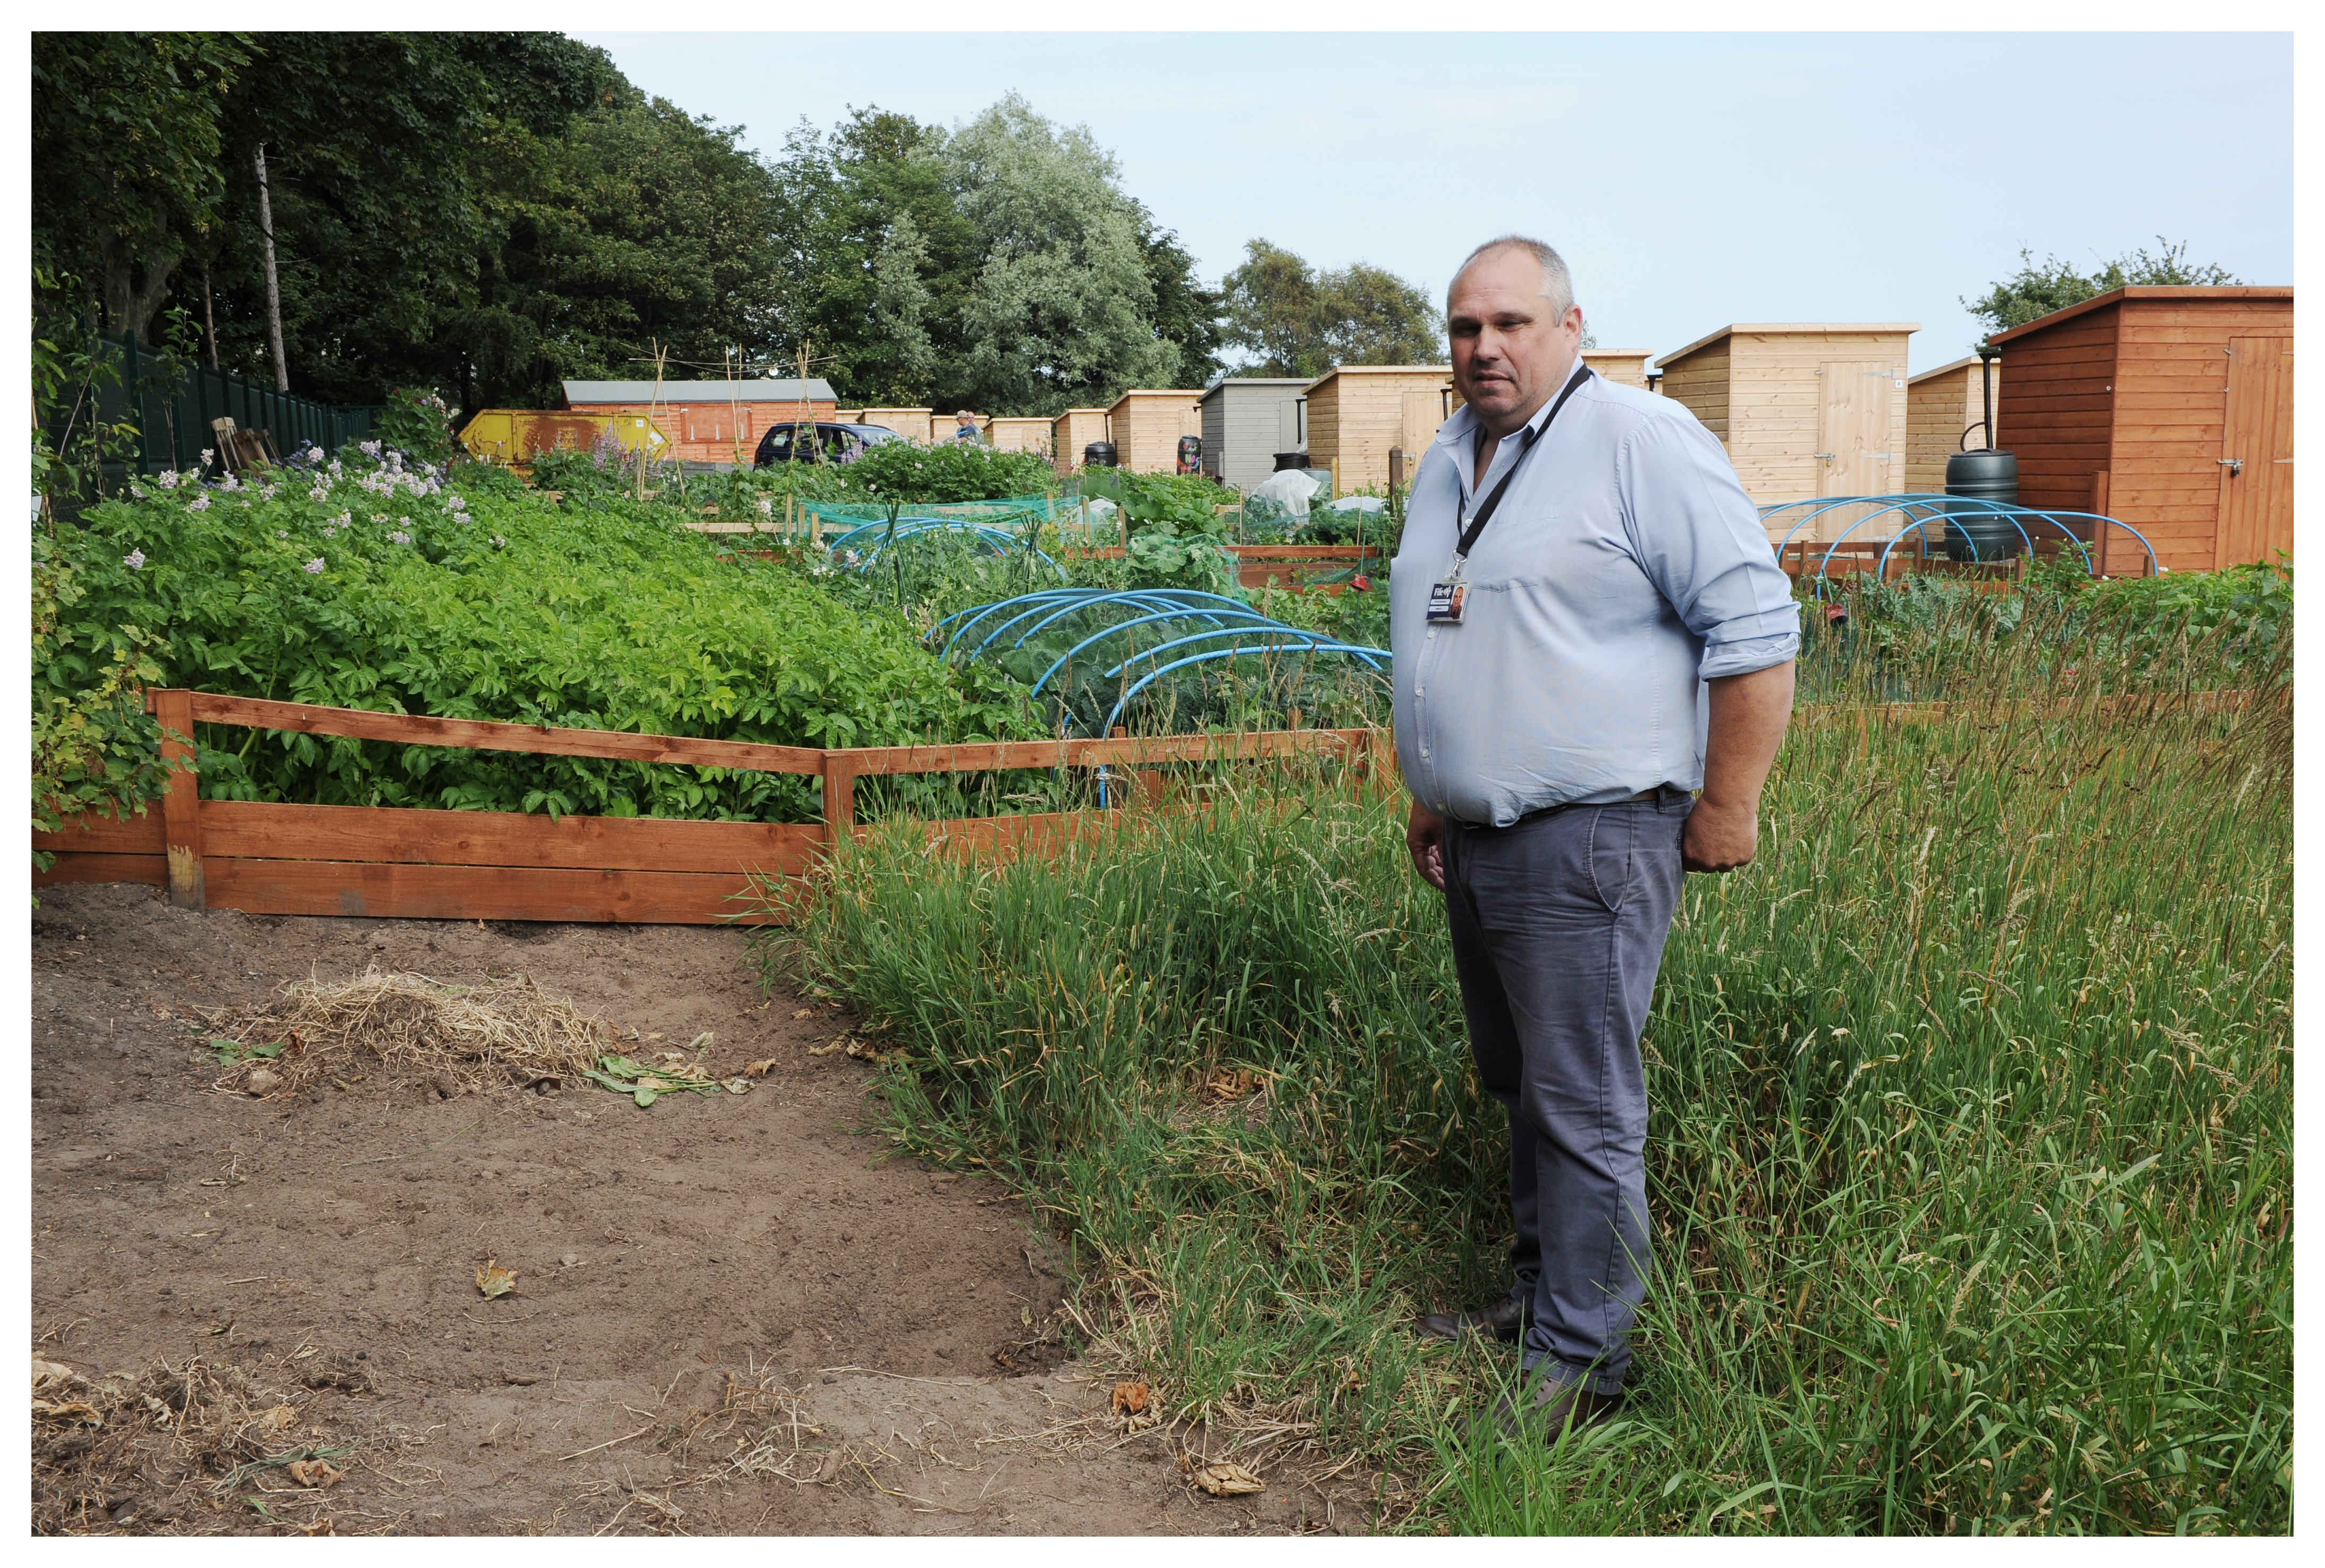 Silverburn Allotment Officer Peter Duncan.from Fife Council at Plot 4 Where military ordnance was discovered and was later made safe by a controlled explosion.